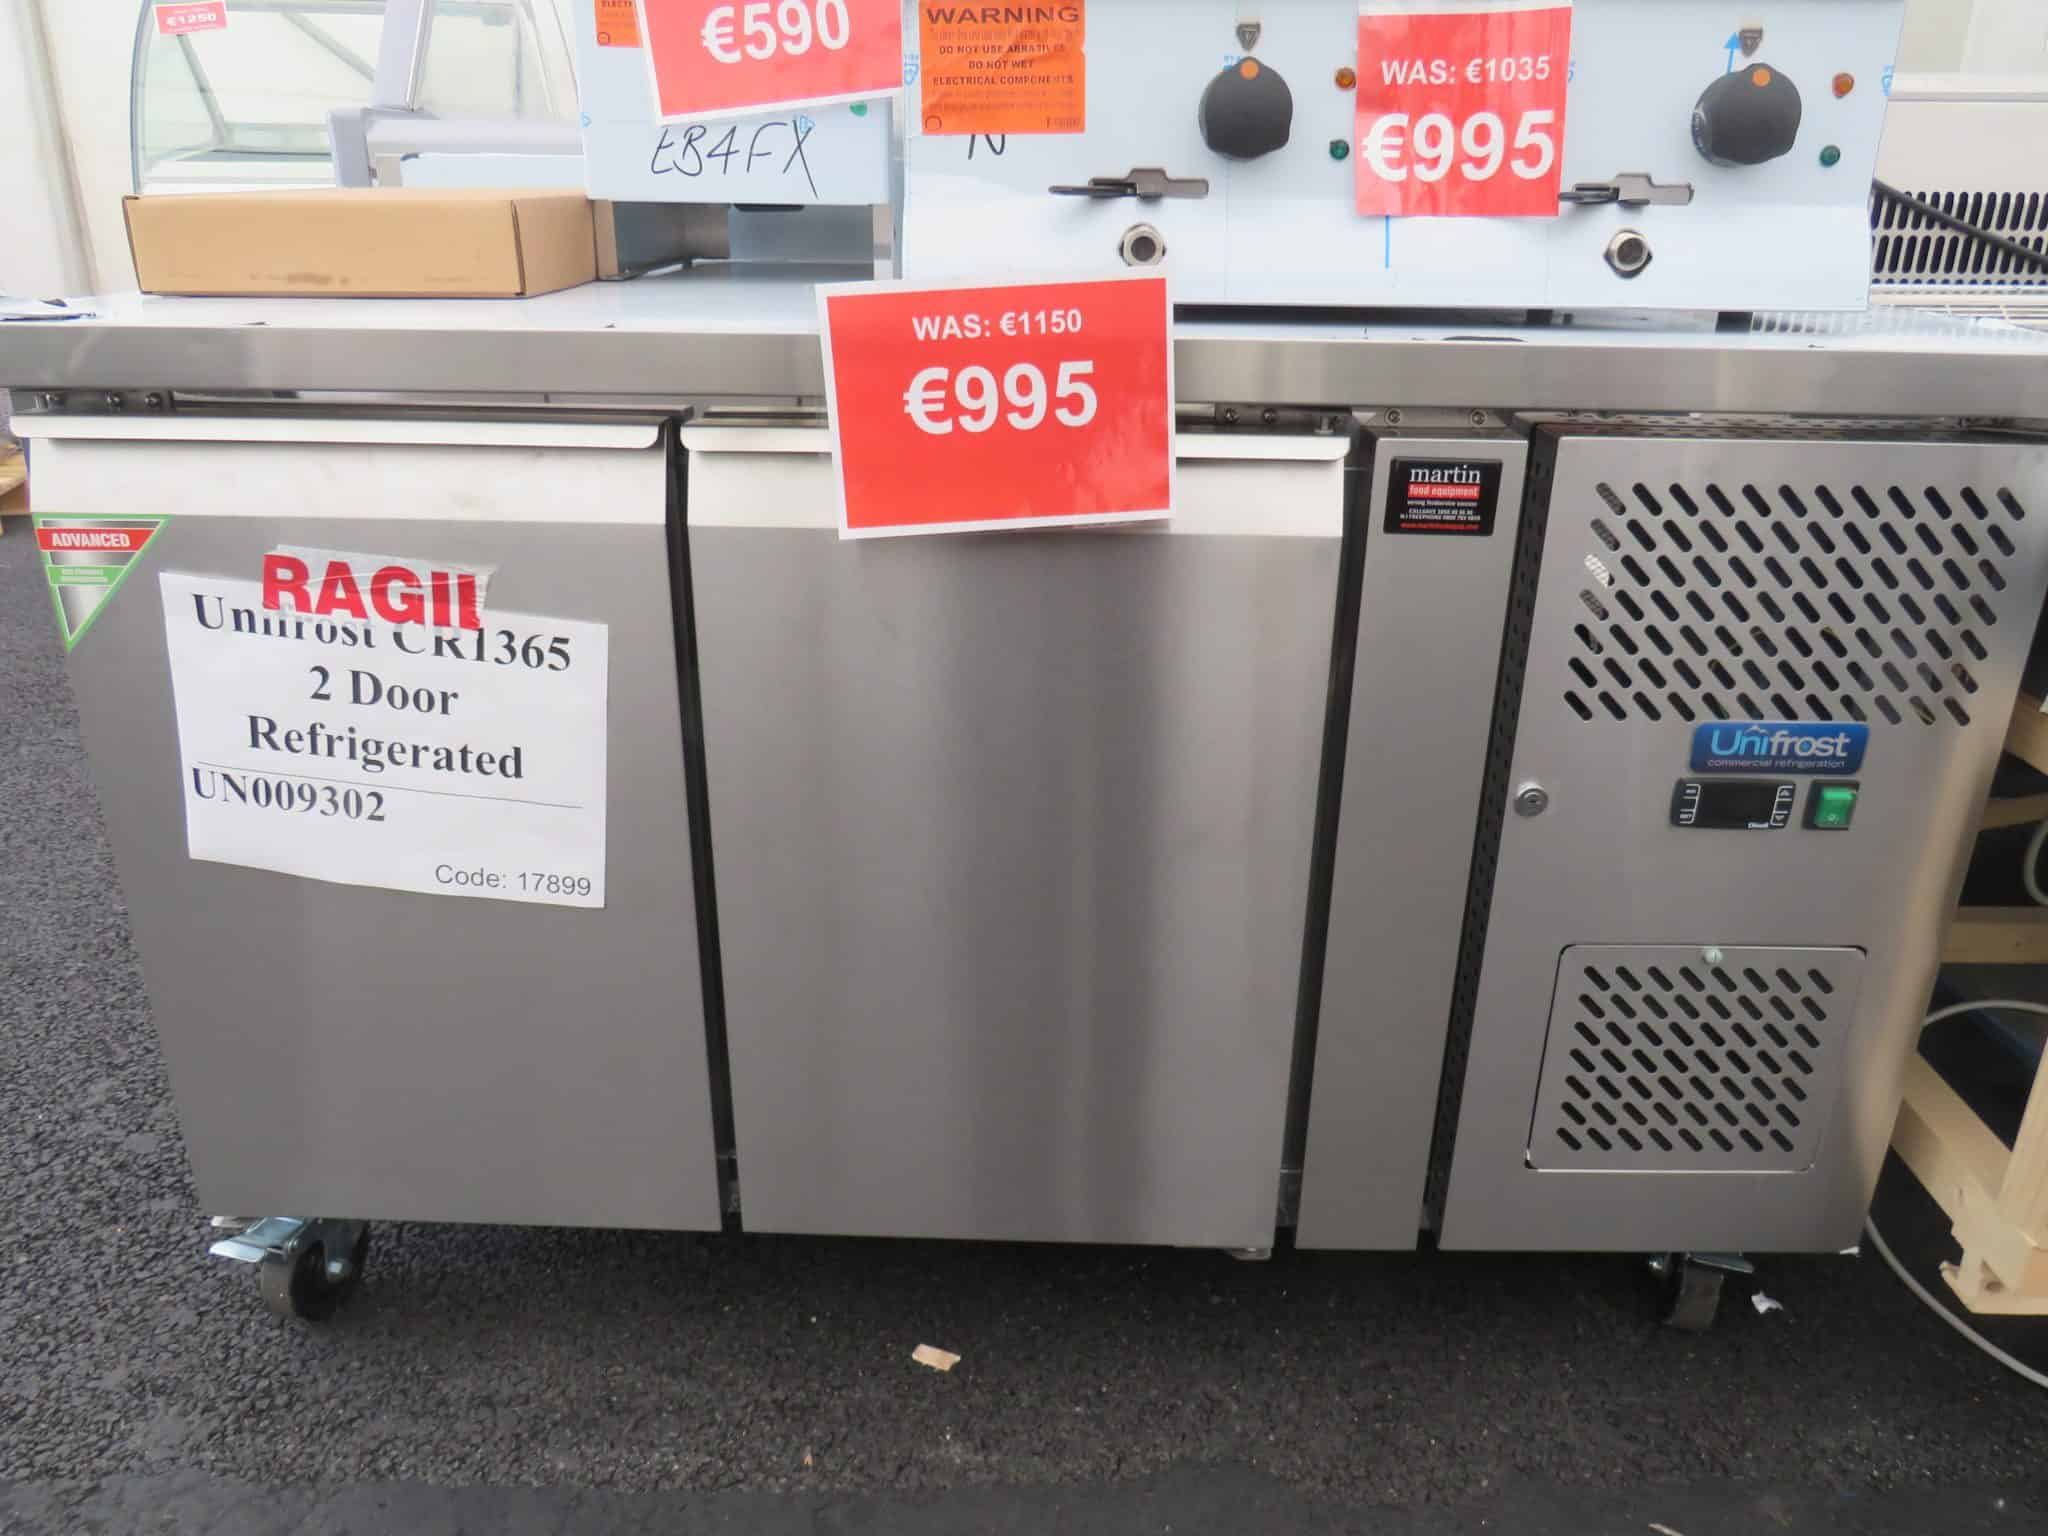 Martin Food Equipment IMG_1206 Flash Sale - Extended Miscellaneous